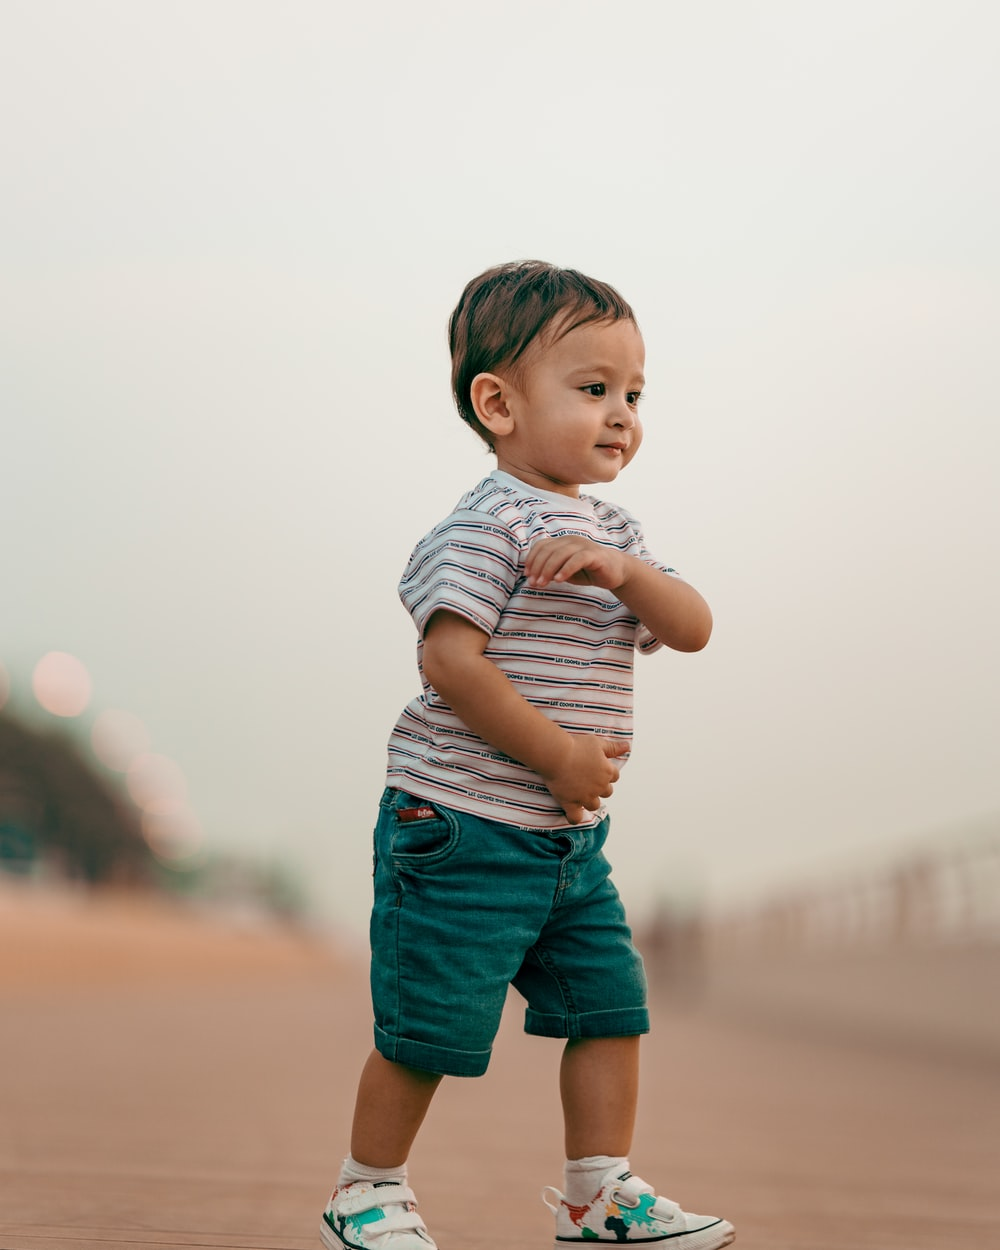 boy in white and black striped shirt and blue shorts standing on brown sand during daytime